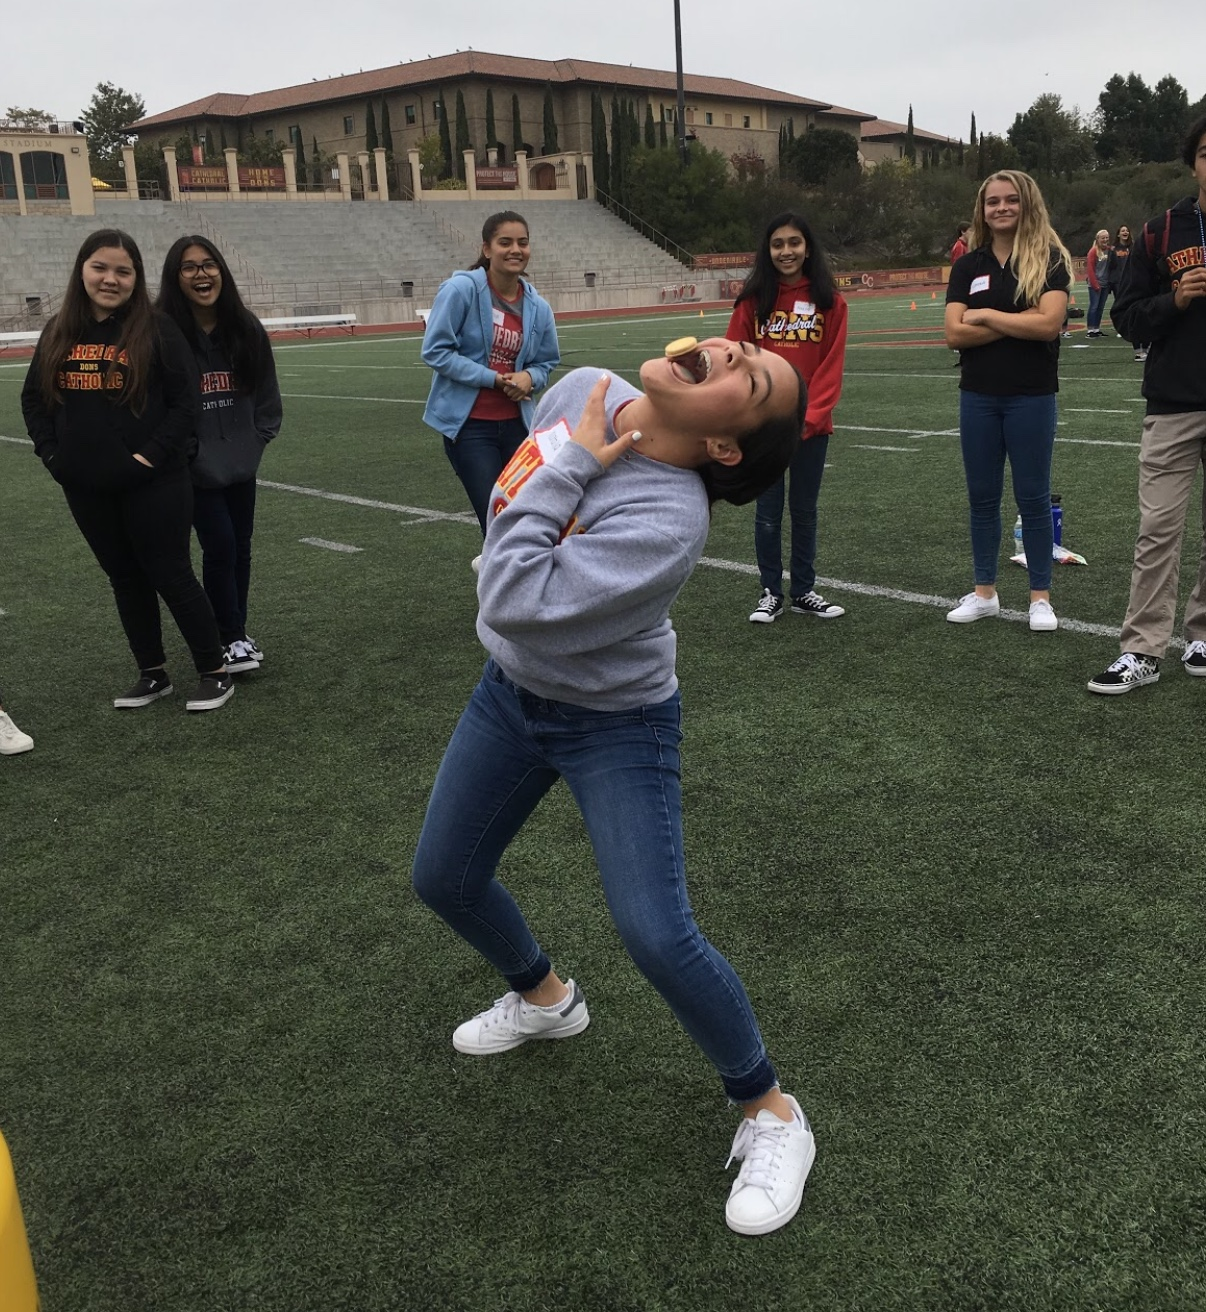 During her freshmen retreat last week, Natalia Dominguez 22' participated in the oreo game, eating her way to victory.